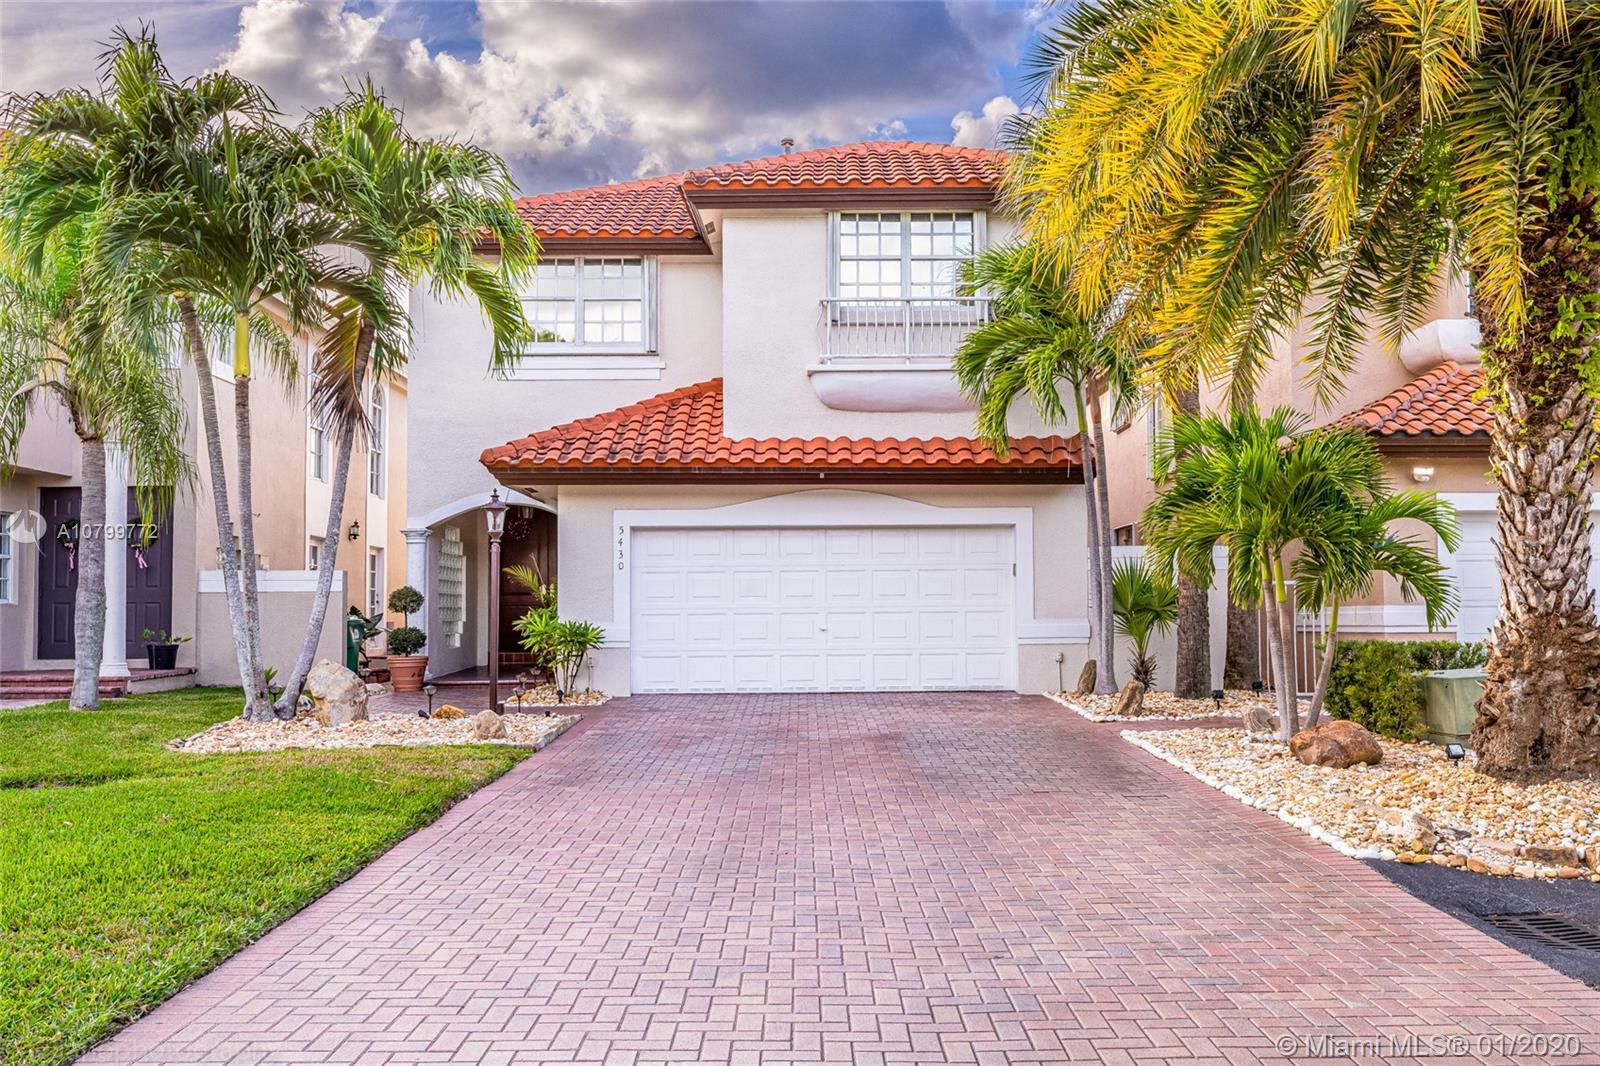 Beautiful home in the heart of Doral, the view is breath taking.This house is ready to move in and a